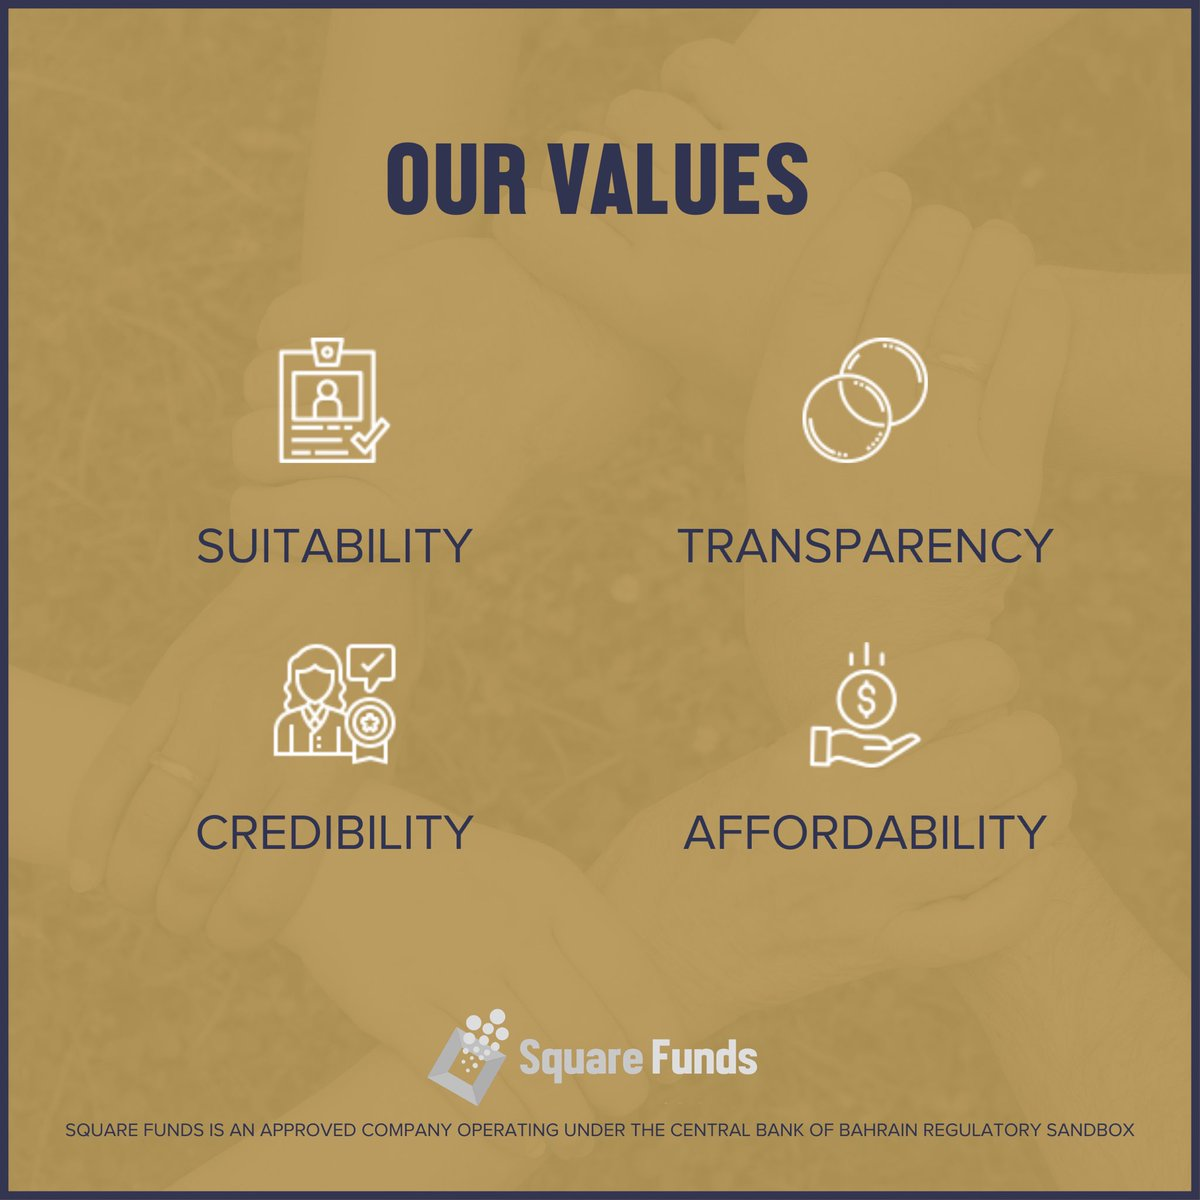 Our values and what we stand for. #SquareFunds https://t.co/NrRVo43rWz